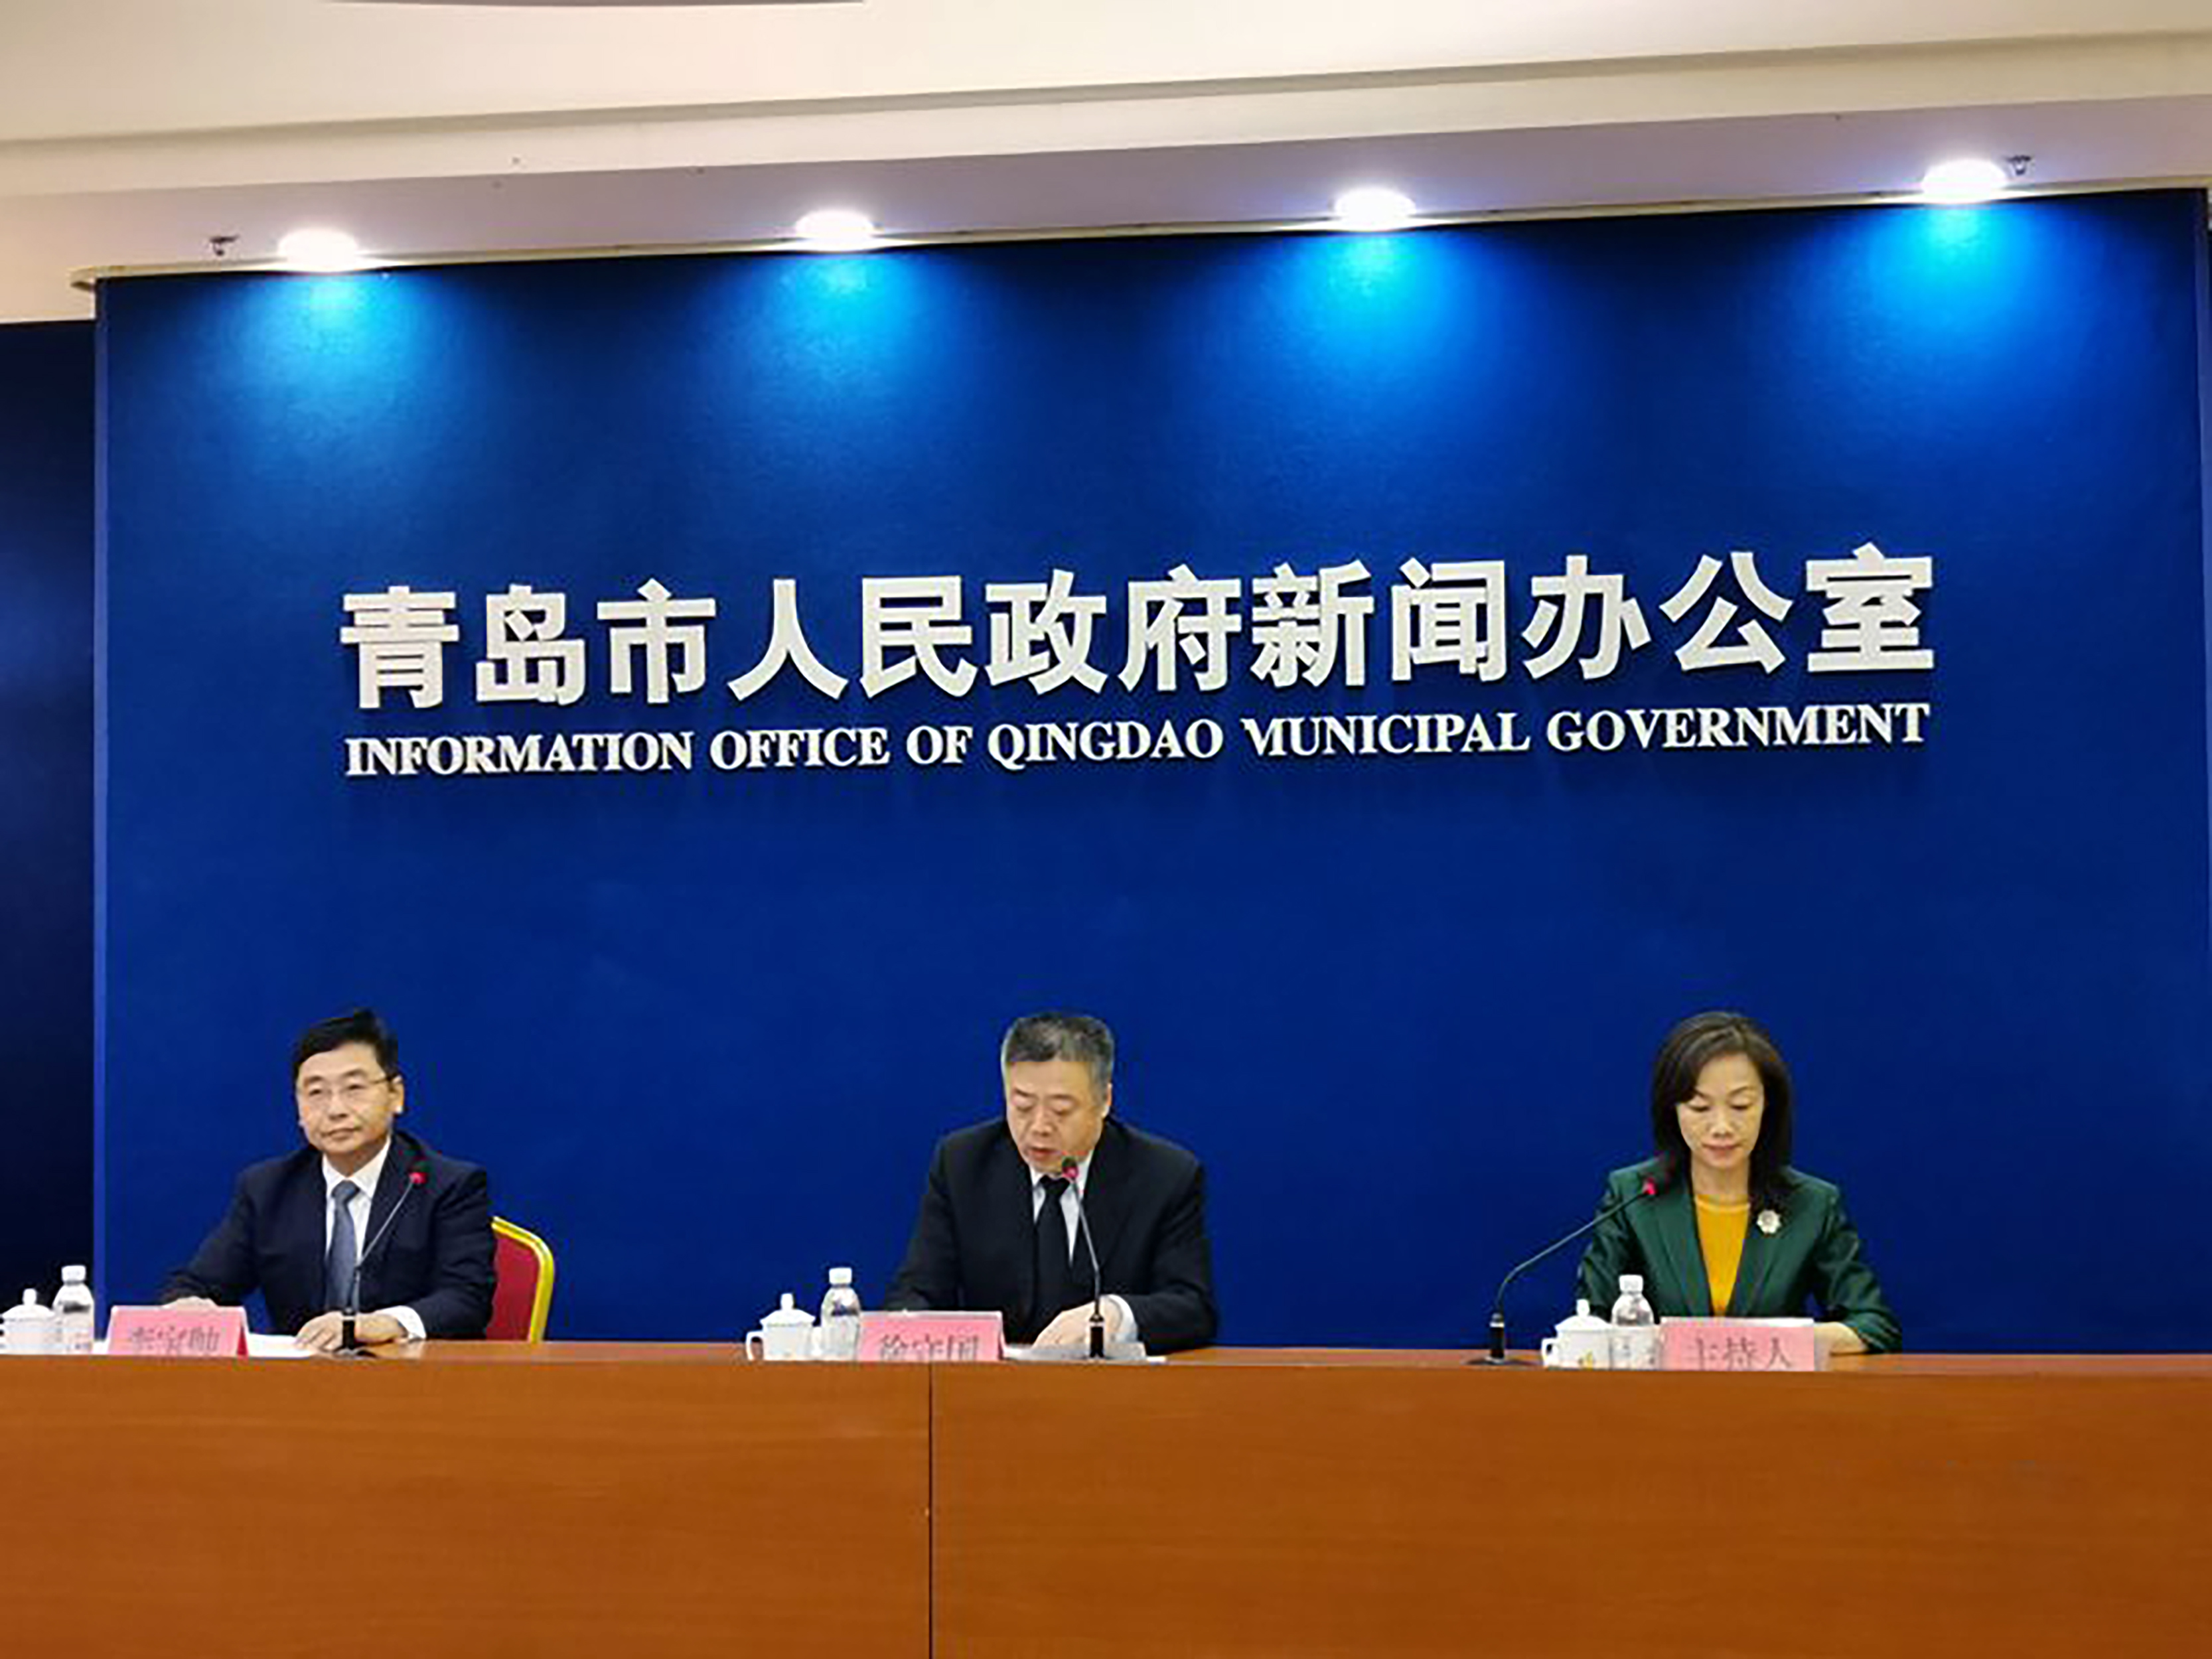 Health officials in China's Qingdao suspended!